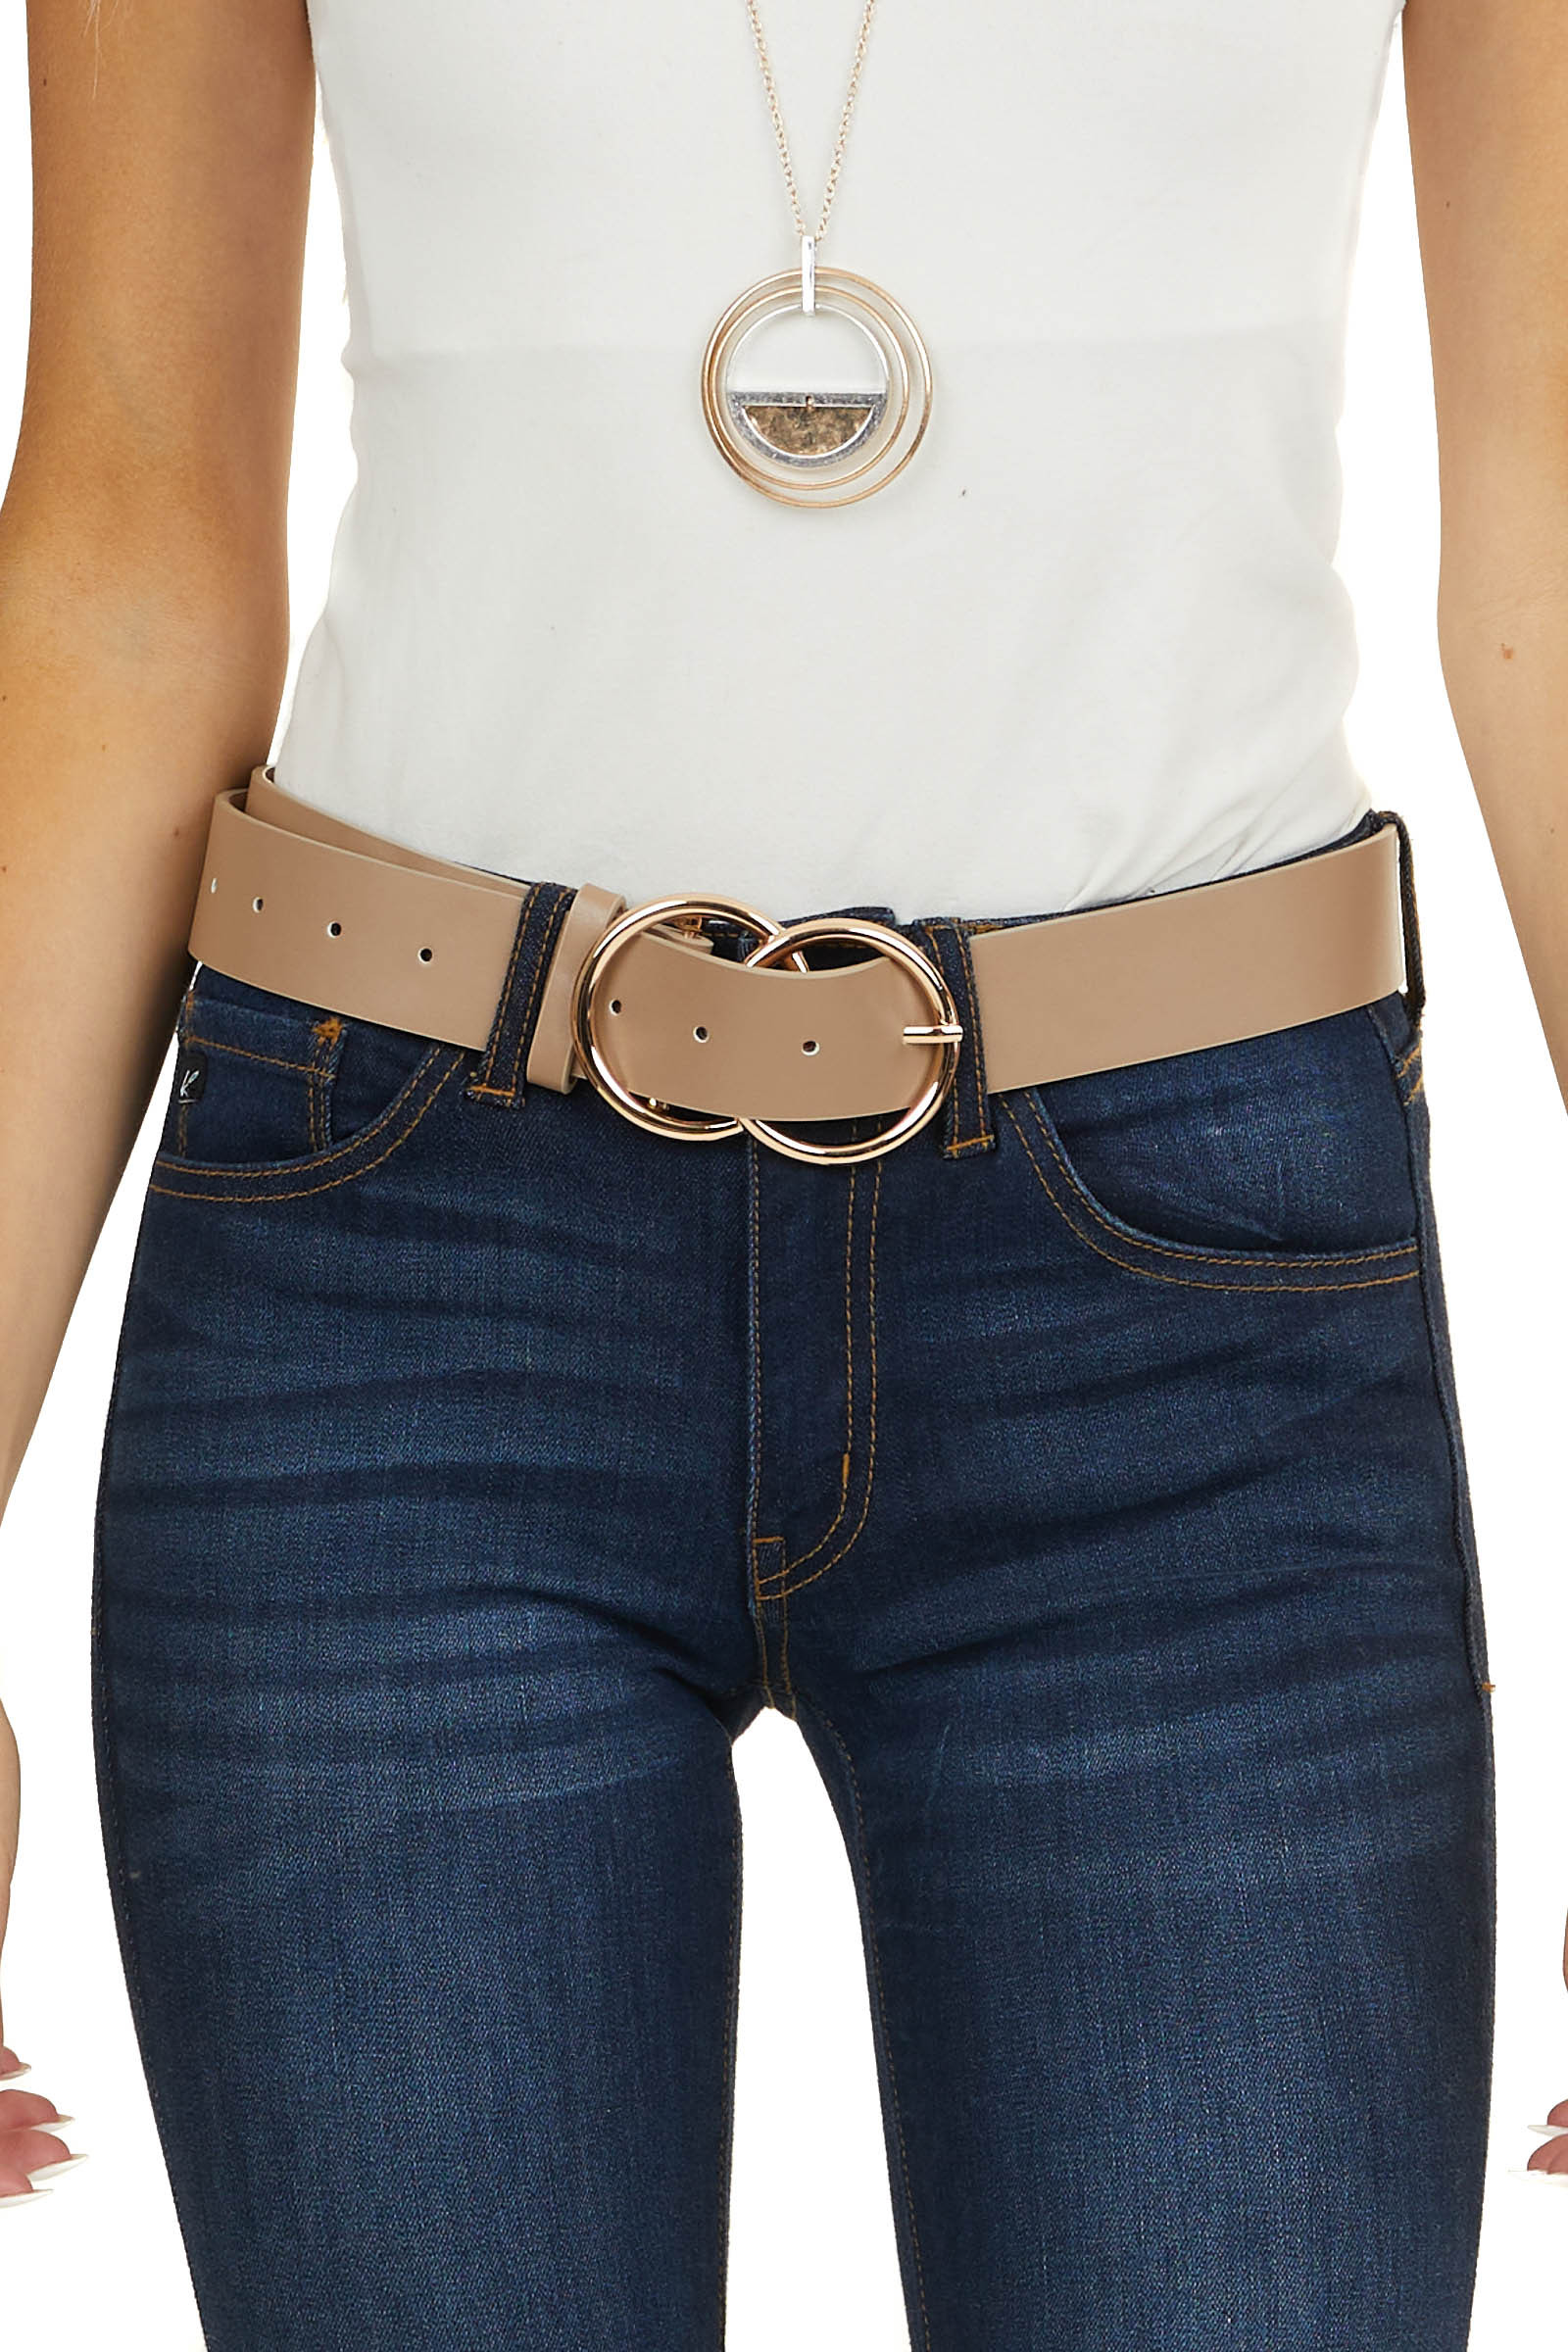 Taupe Faux Leather Belt with Gold Double Ring Buckle